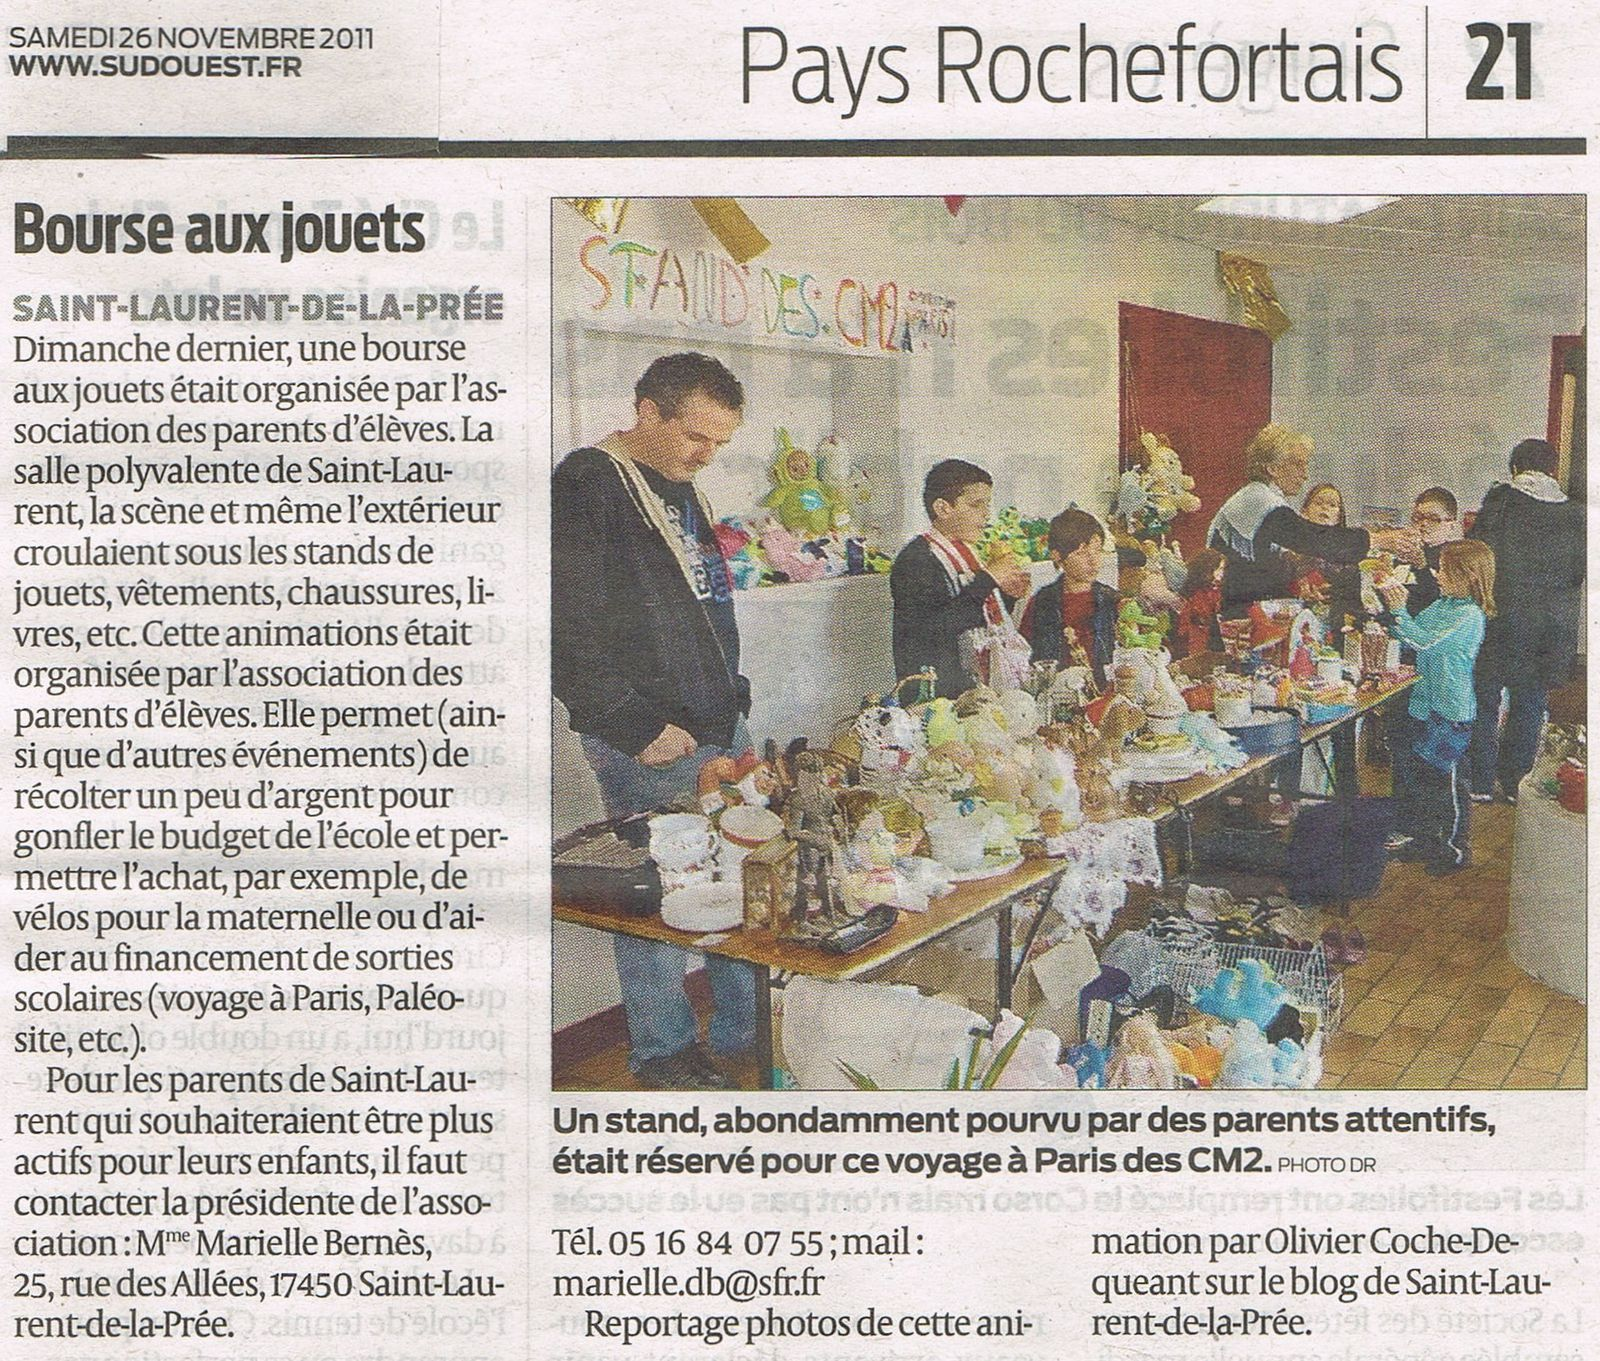 art.SO-du-26-nov.-2011.-Bourse-aux-jouets-du-20-novembre.jpg